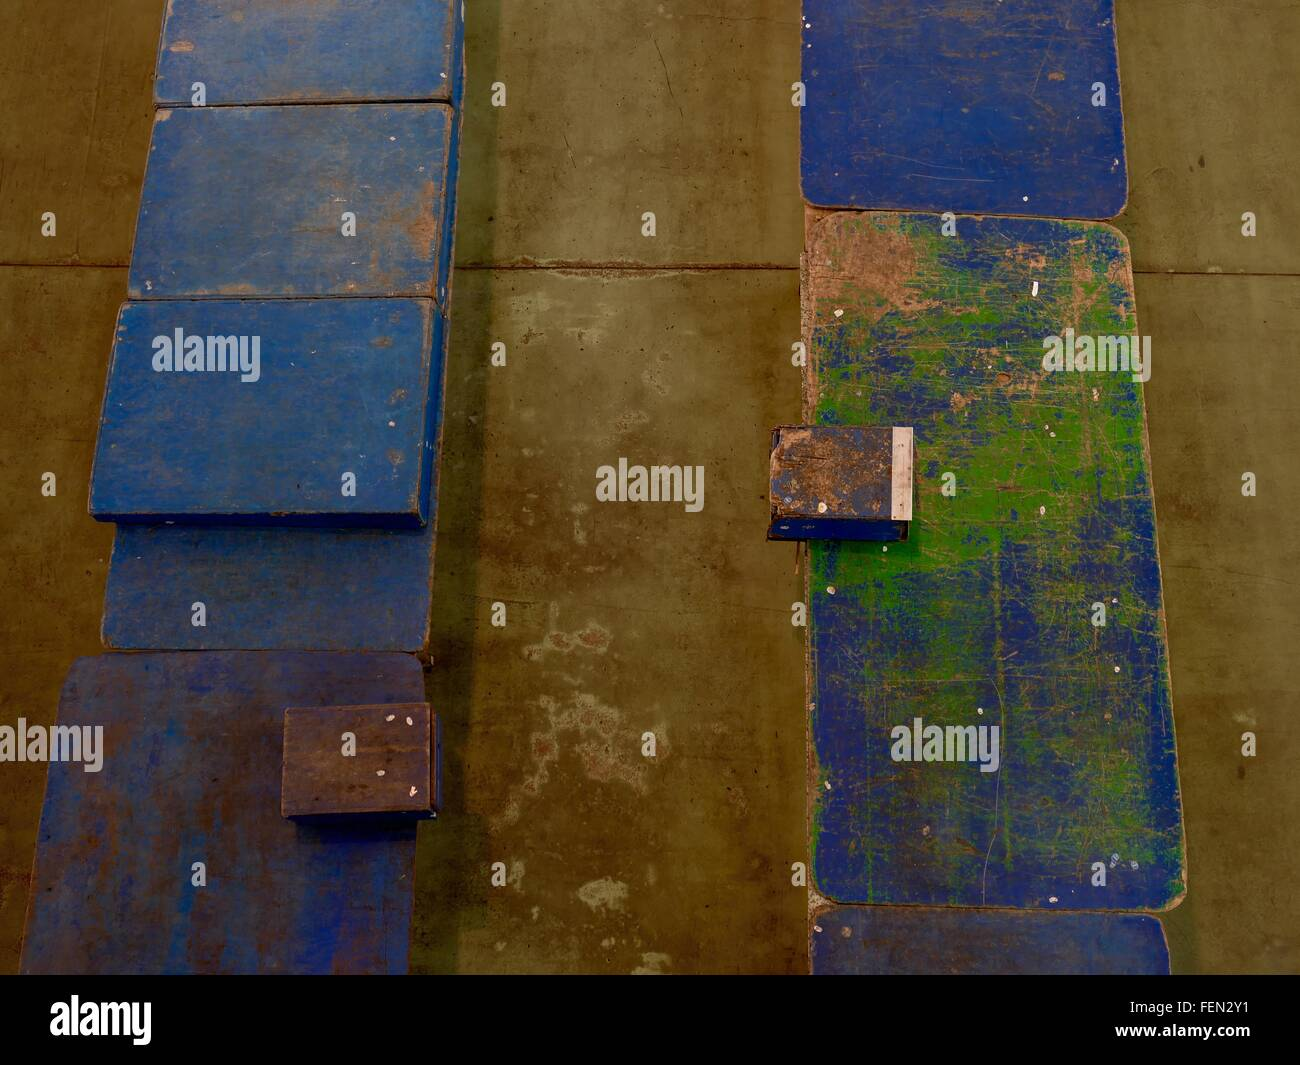 Old Blue And Green Planks On Concrete - Stock Image